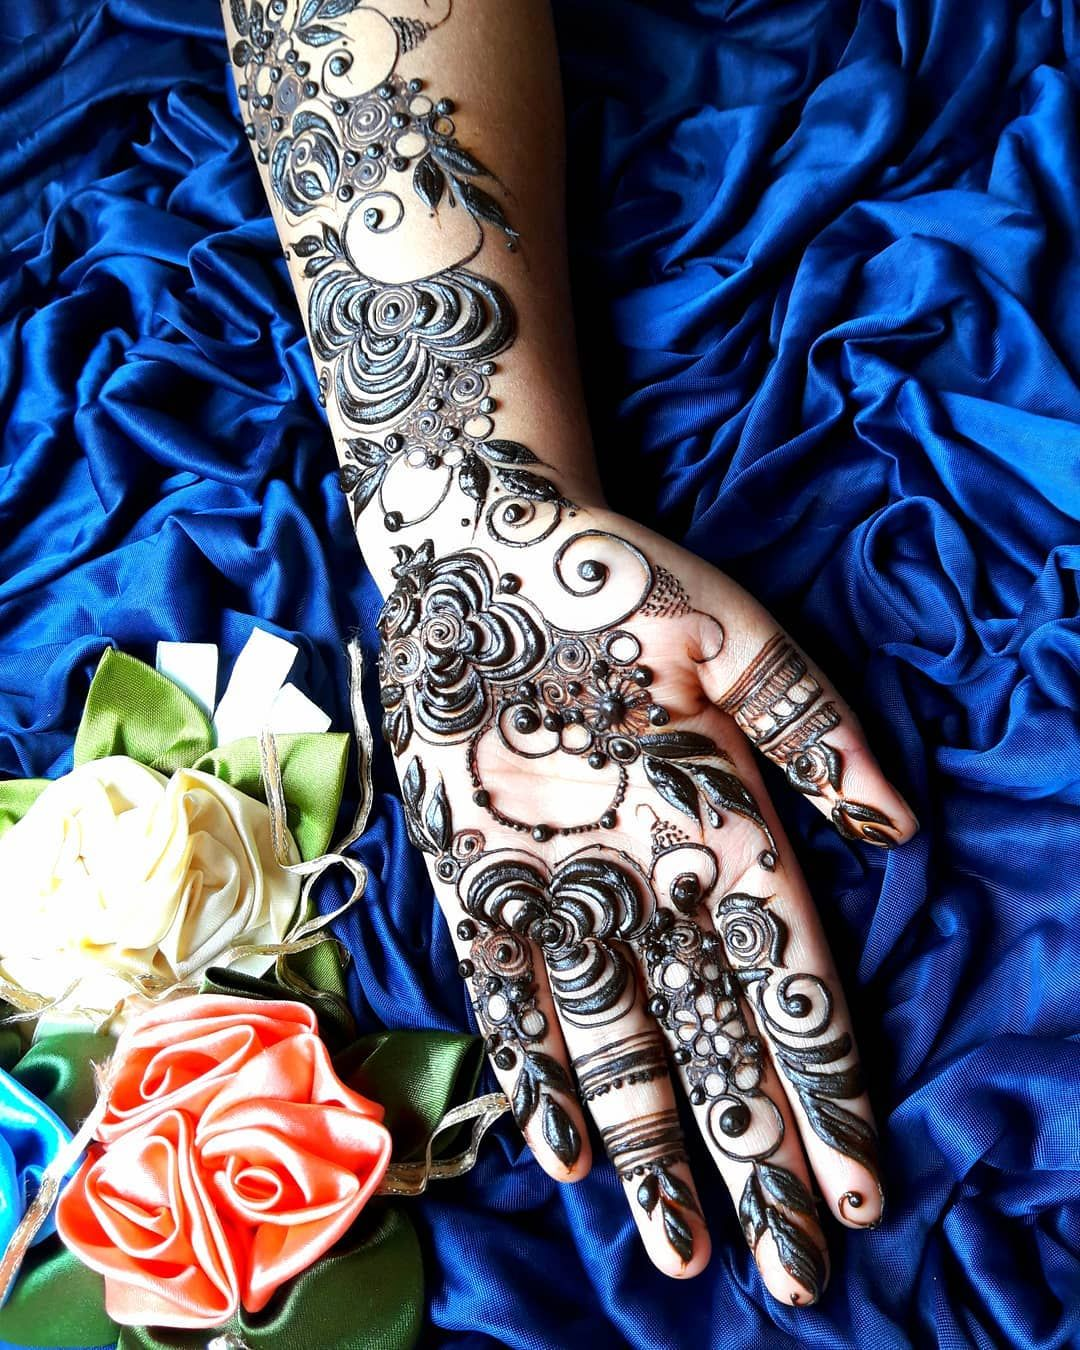 Latest Dubai Style Henna Designs For Hands Uploaded By Mehnditab